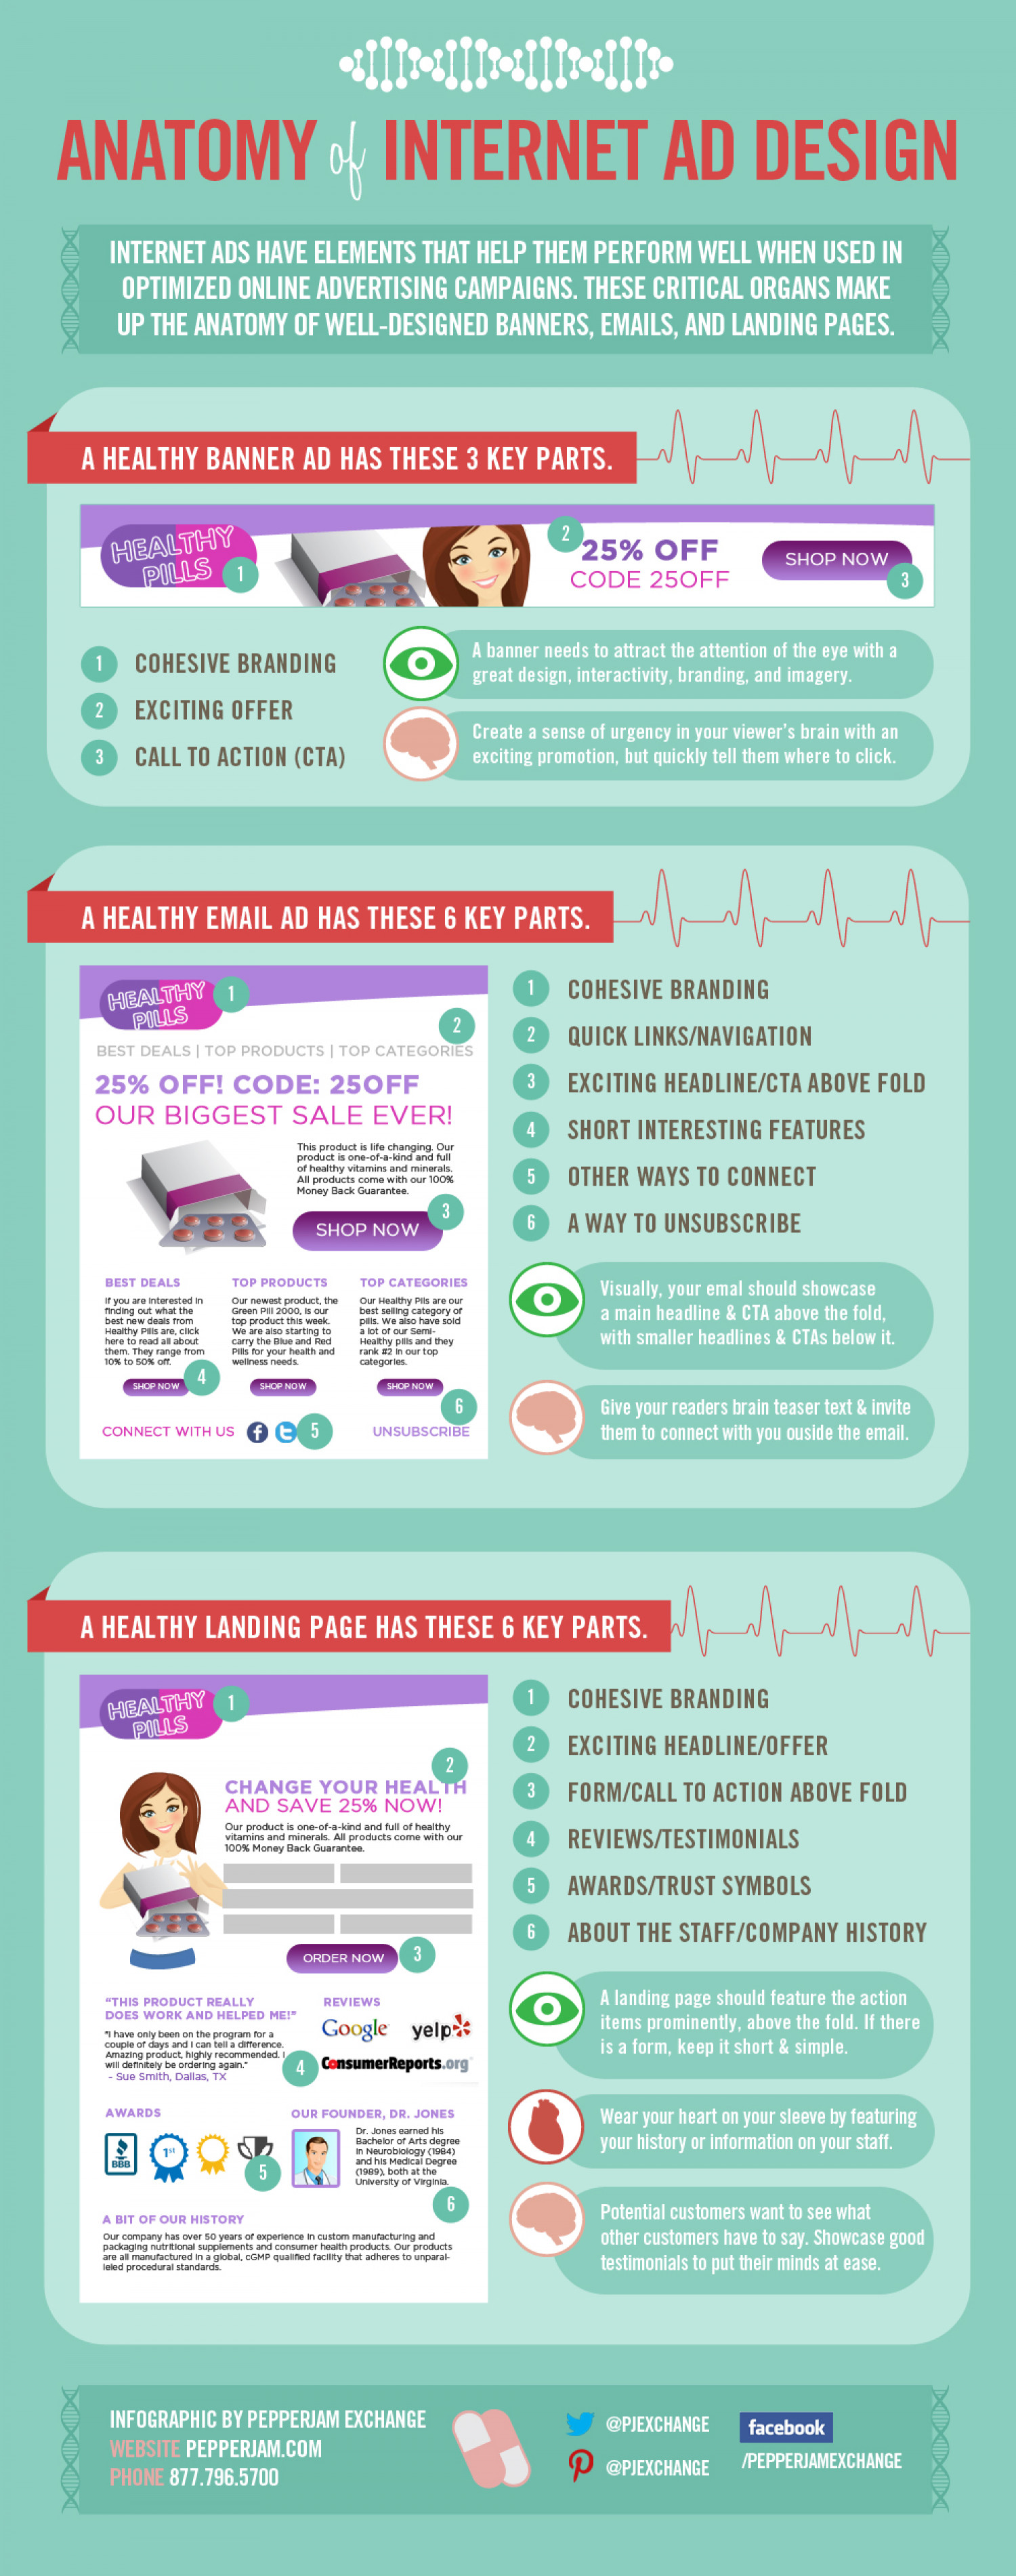 Anatomy of Internet Ad Design Infographic